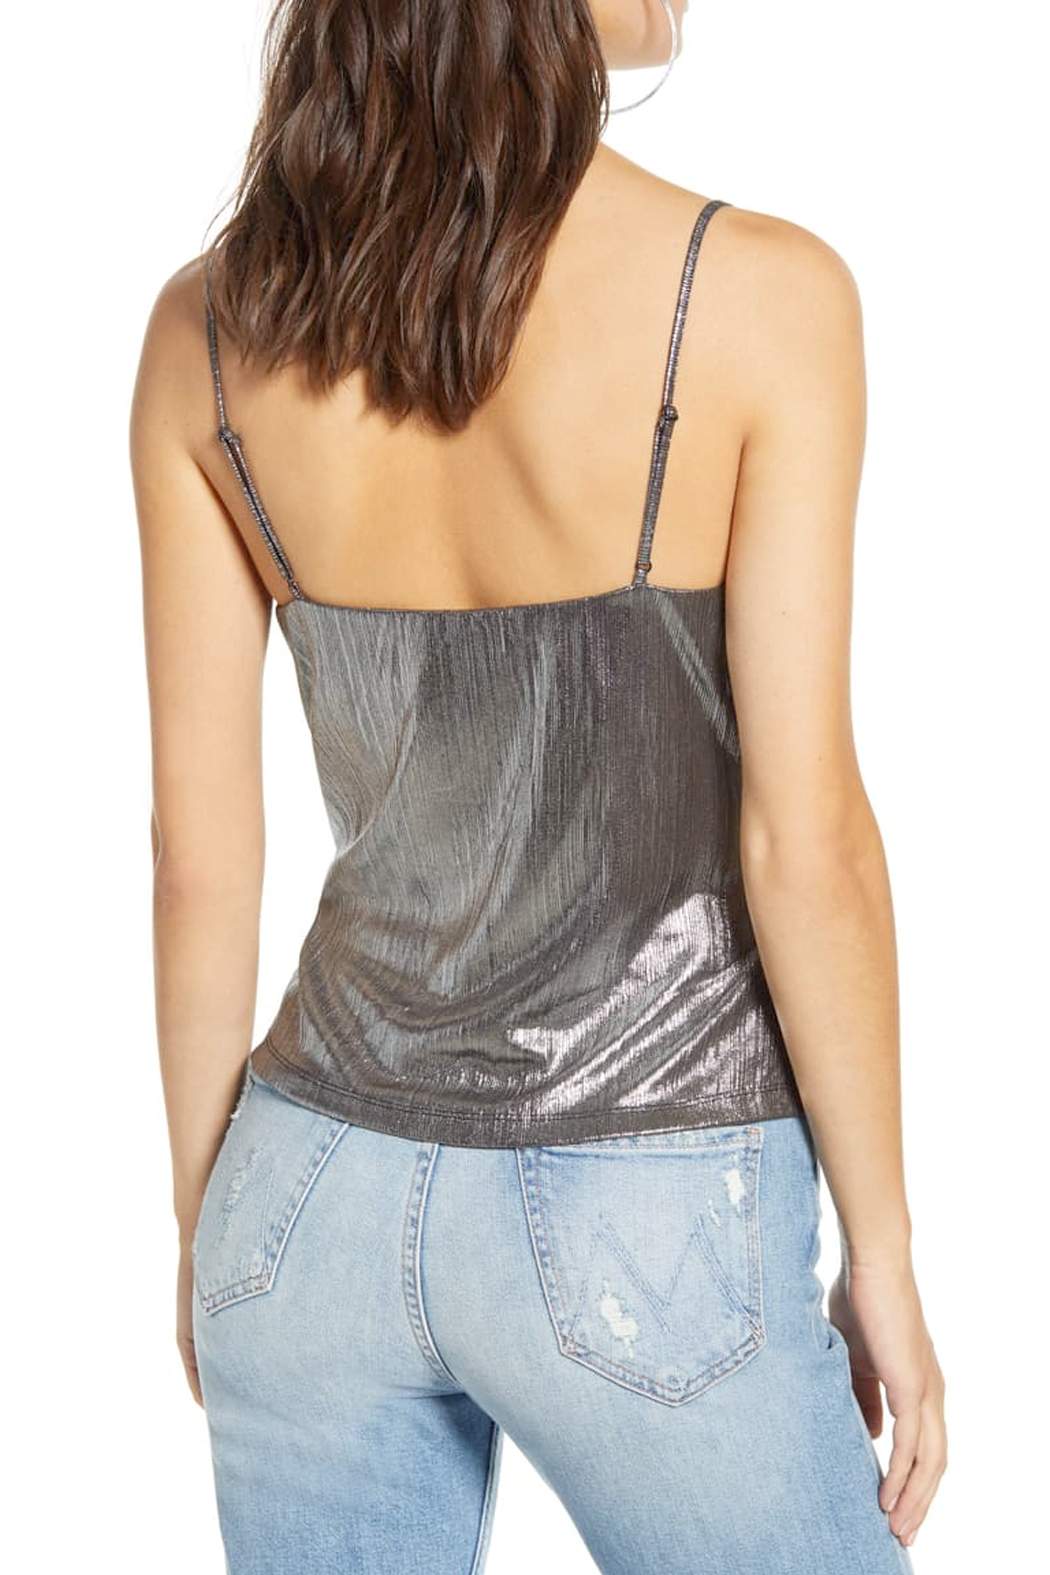 Endless Rose Silver Metallic Camisole Top - Front Full Image